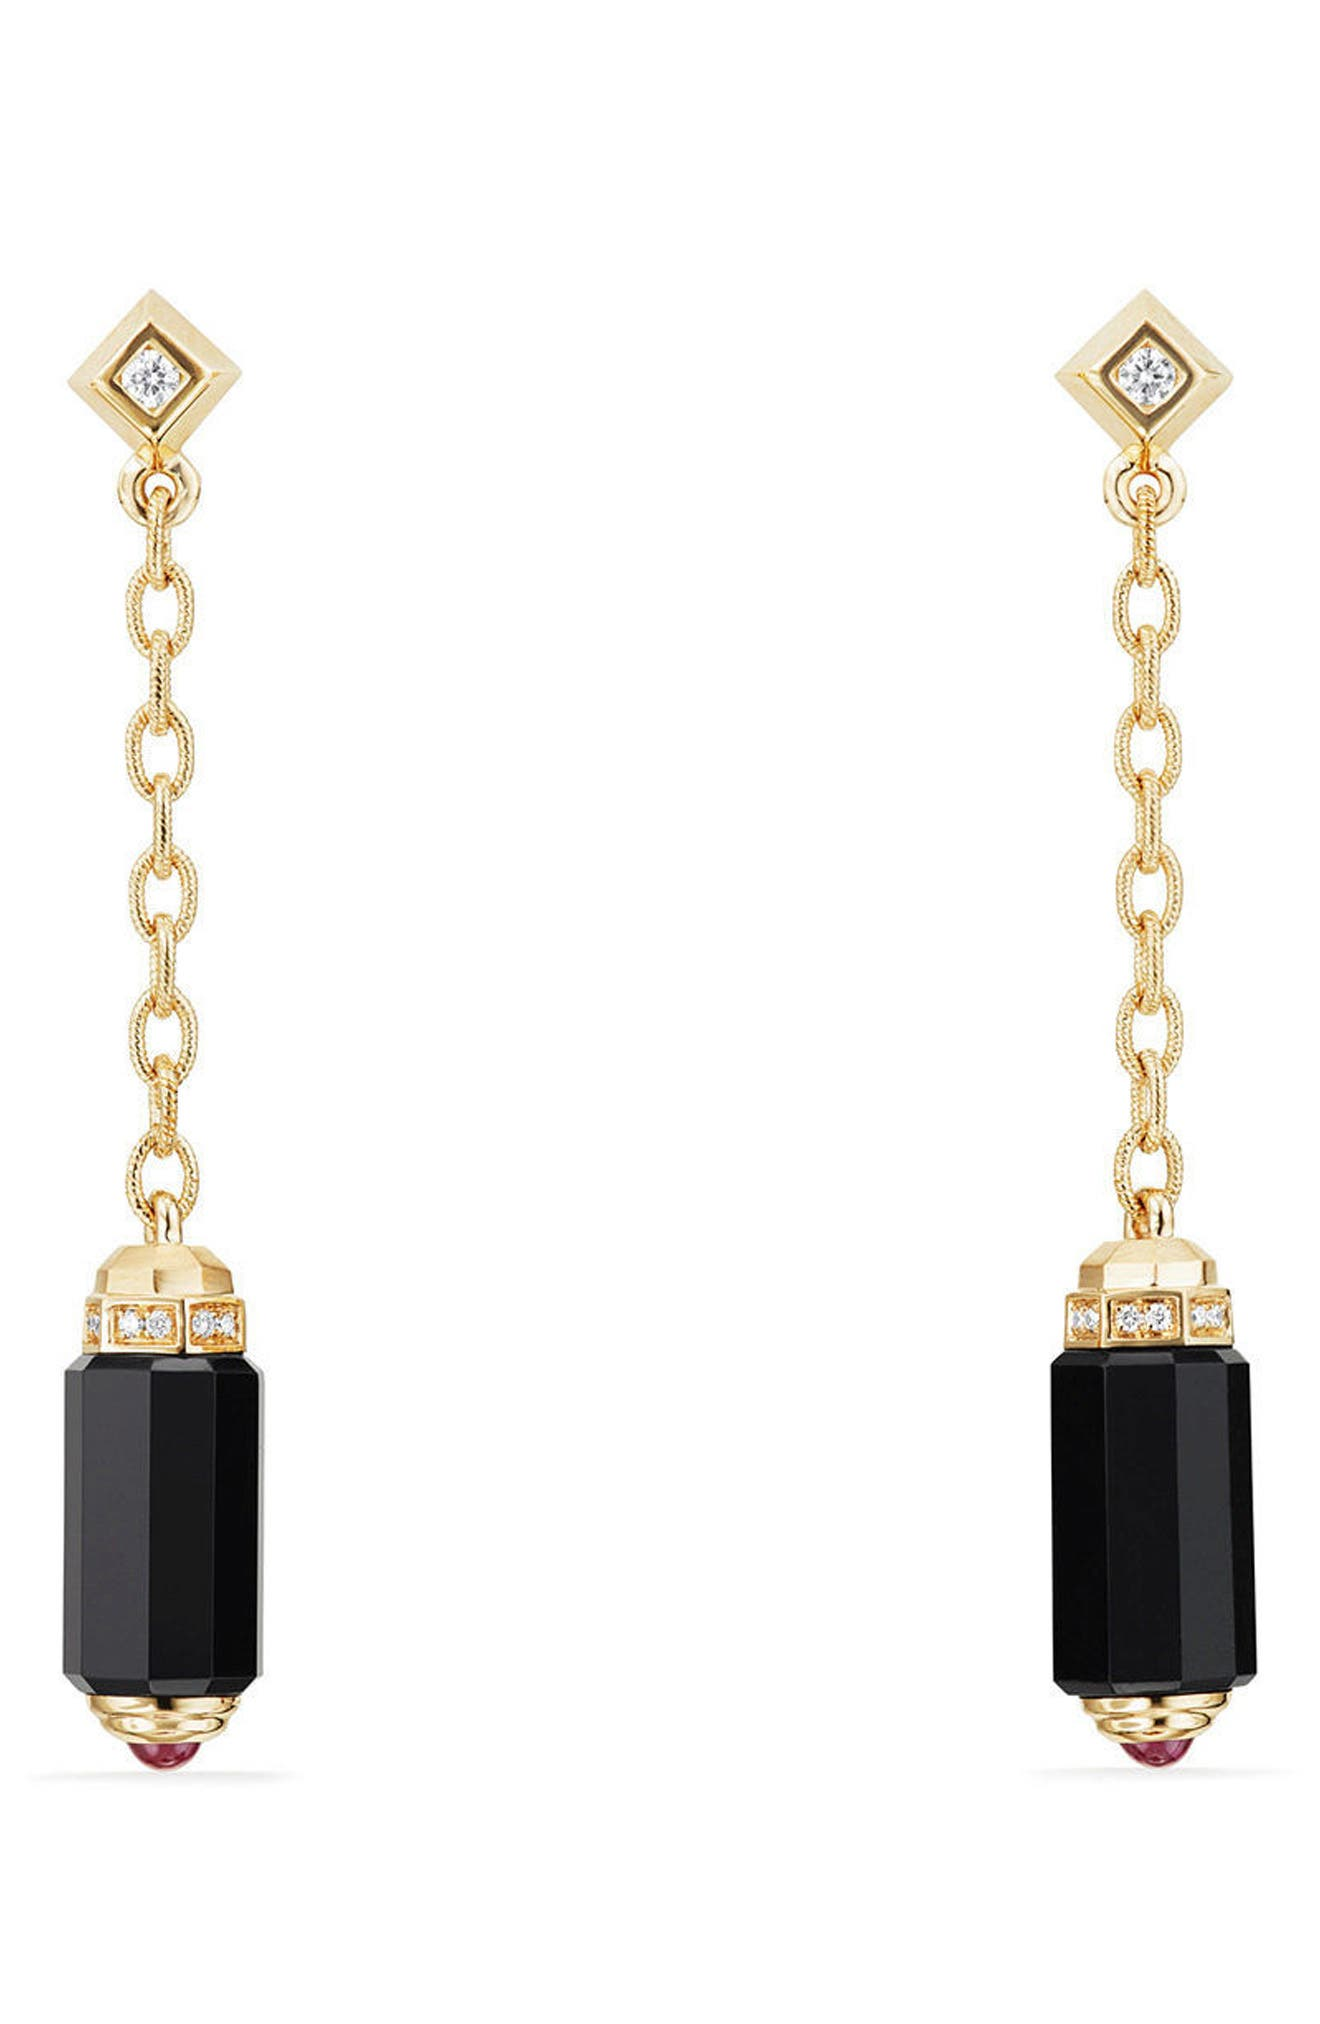 David Yurman Barrels Chain Drop Earrings with Diamonds in 18K Gold